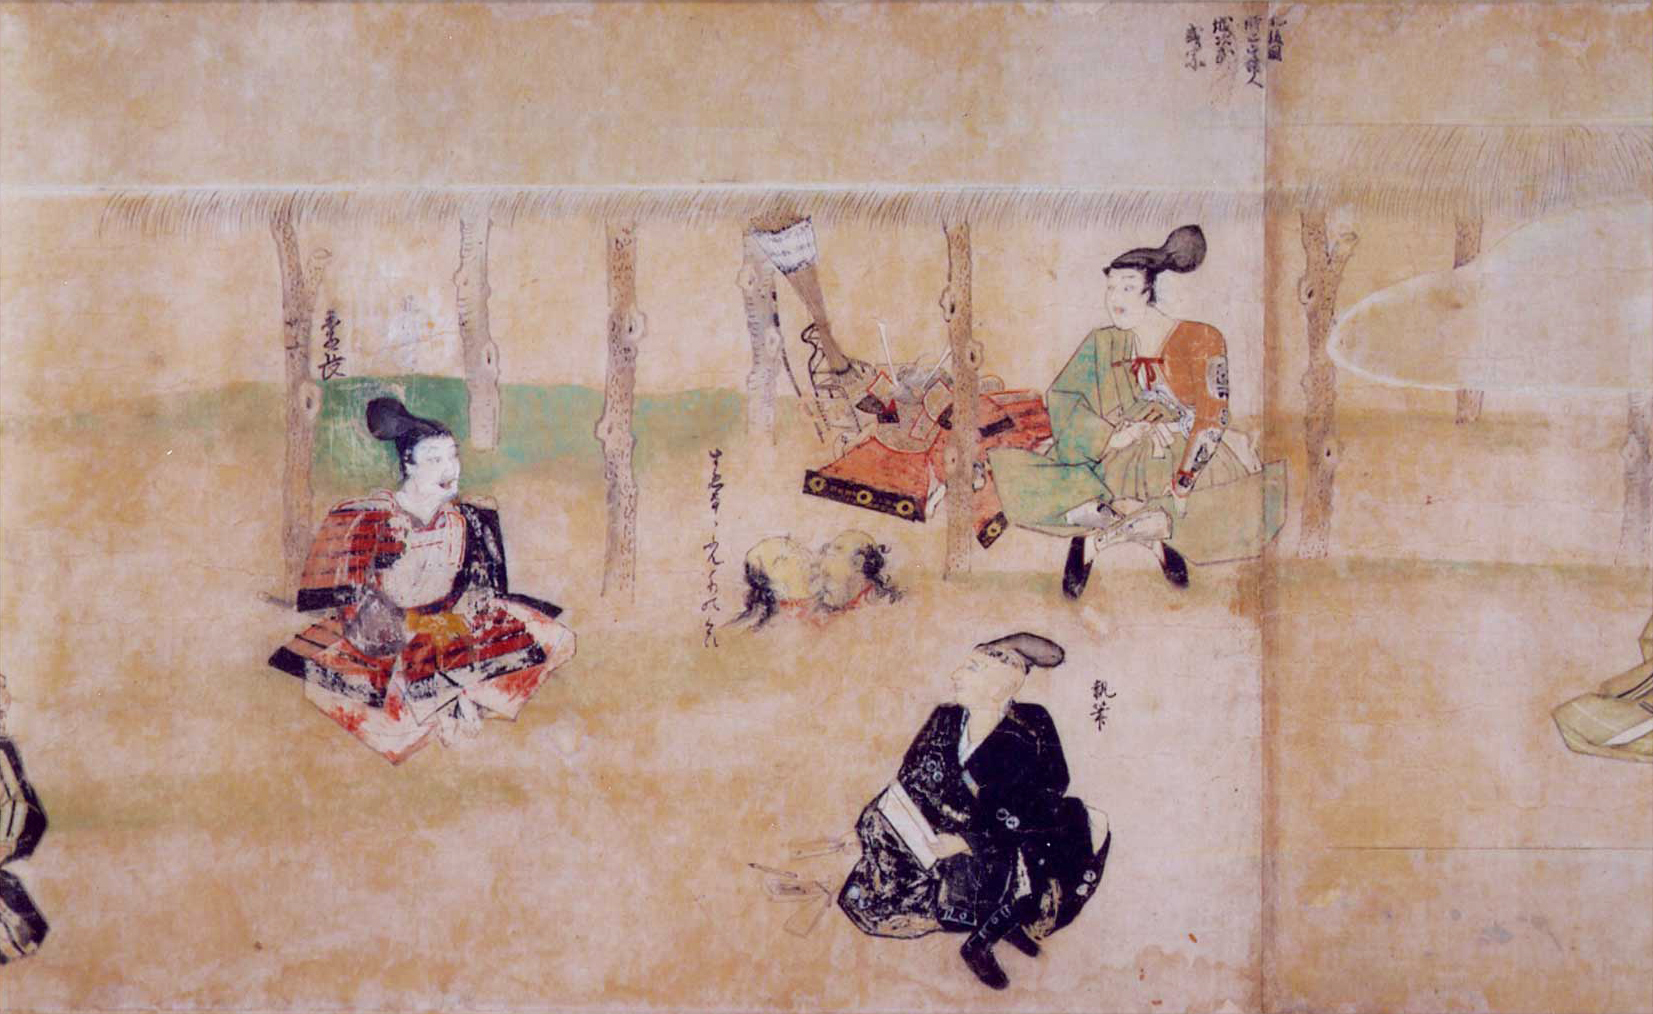 art on japanese art history essay Works reflecting the style of japonism and japanese visual art can be seen in some of the best art museums in the world • for a chronological guide to the evolution of japanese painting, see: history of art timeline.